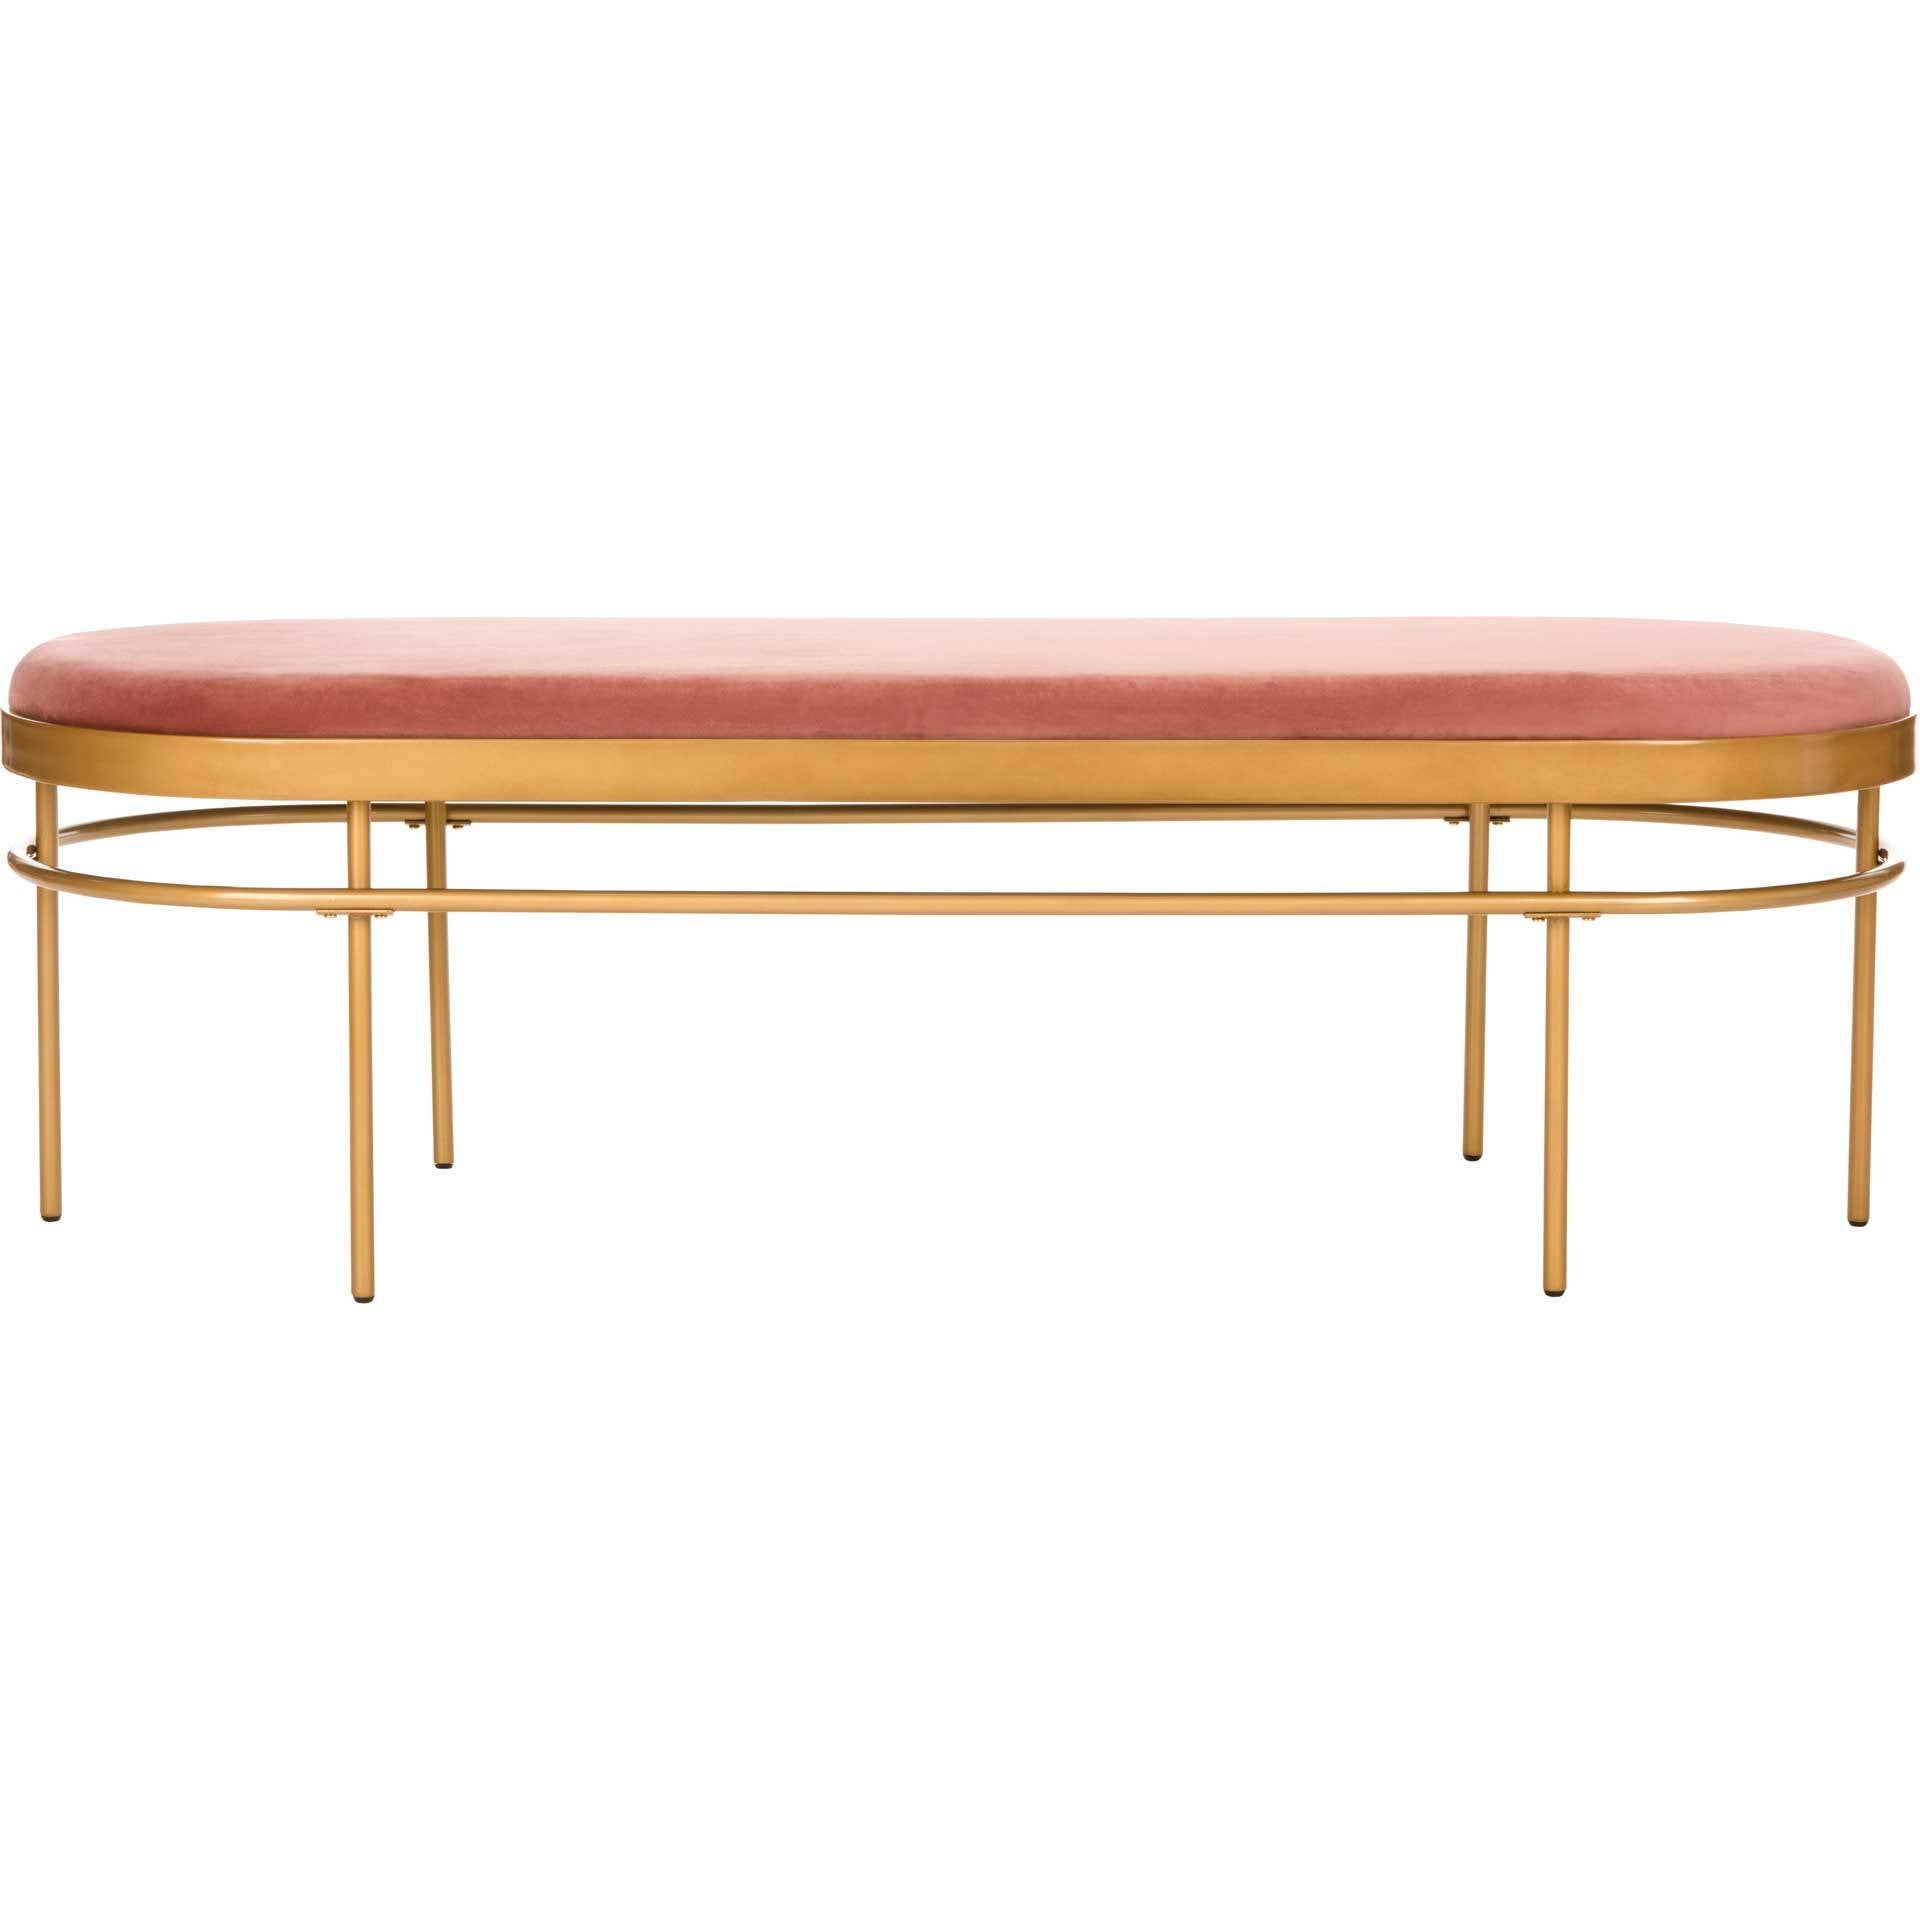 Sylas Oval Bench Dusty Rose/Gold